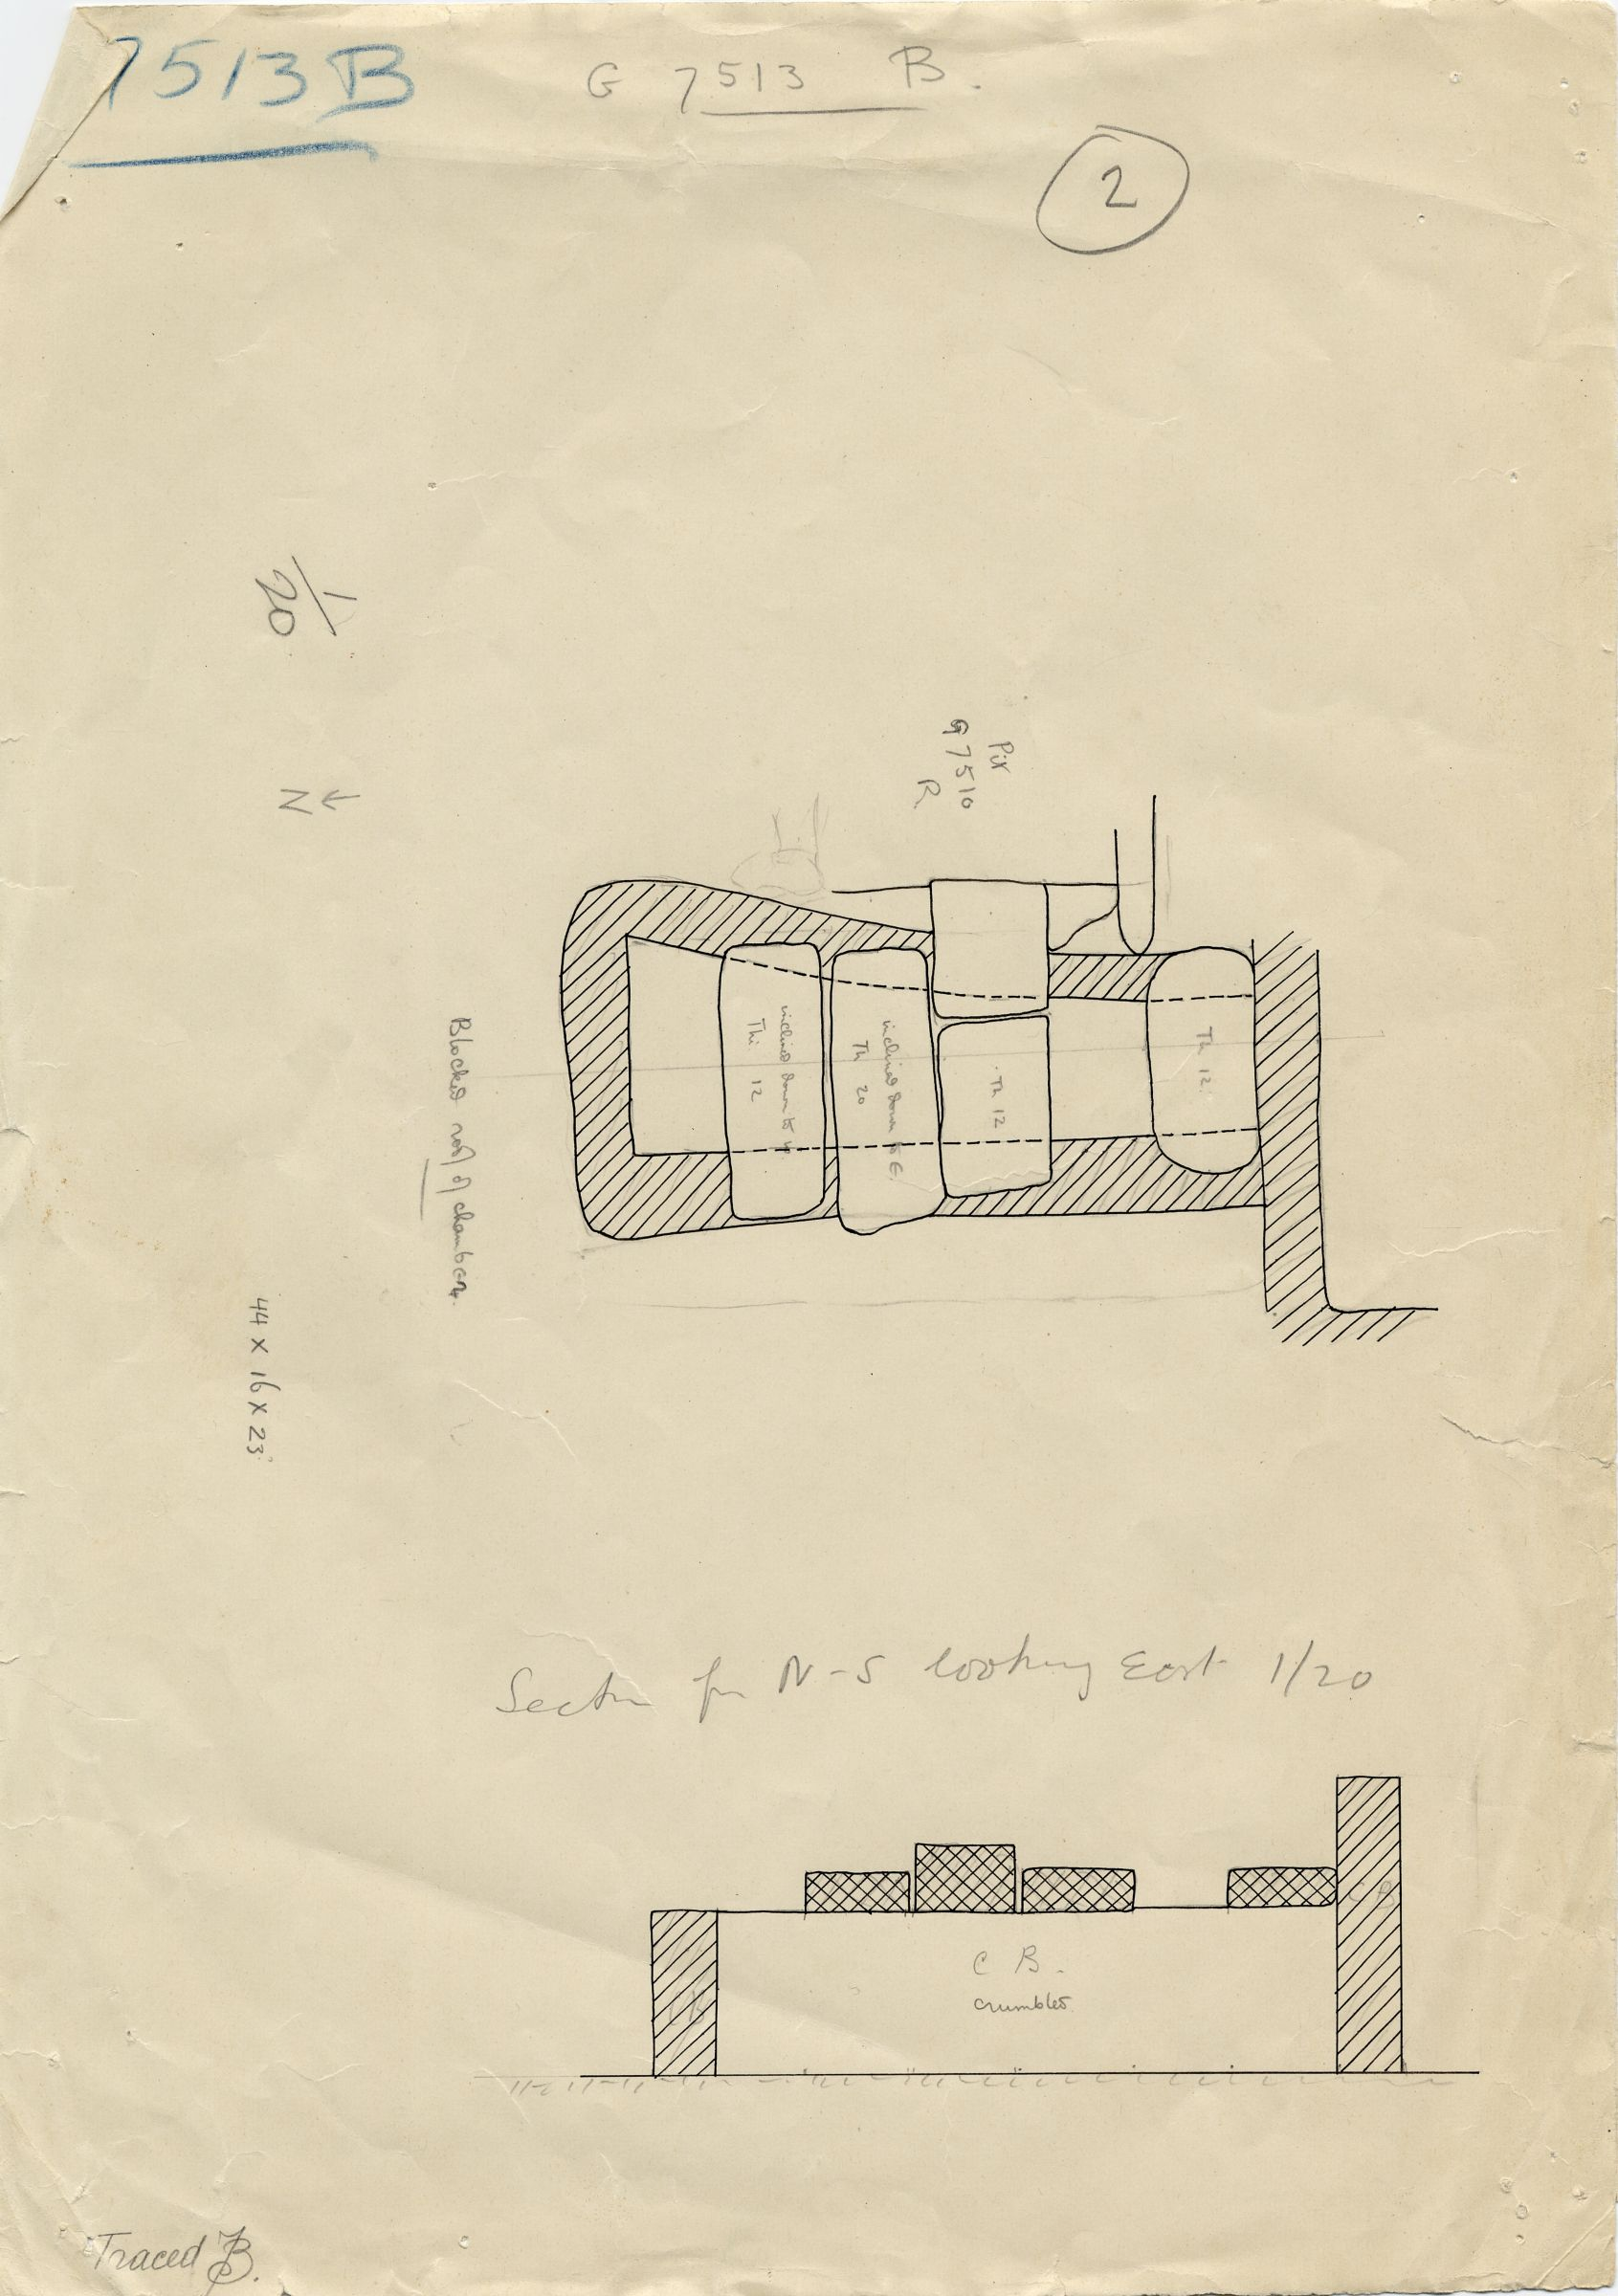 Maps and plans: G 7513, Shaft B